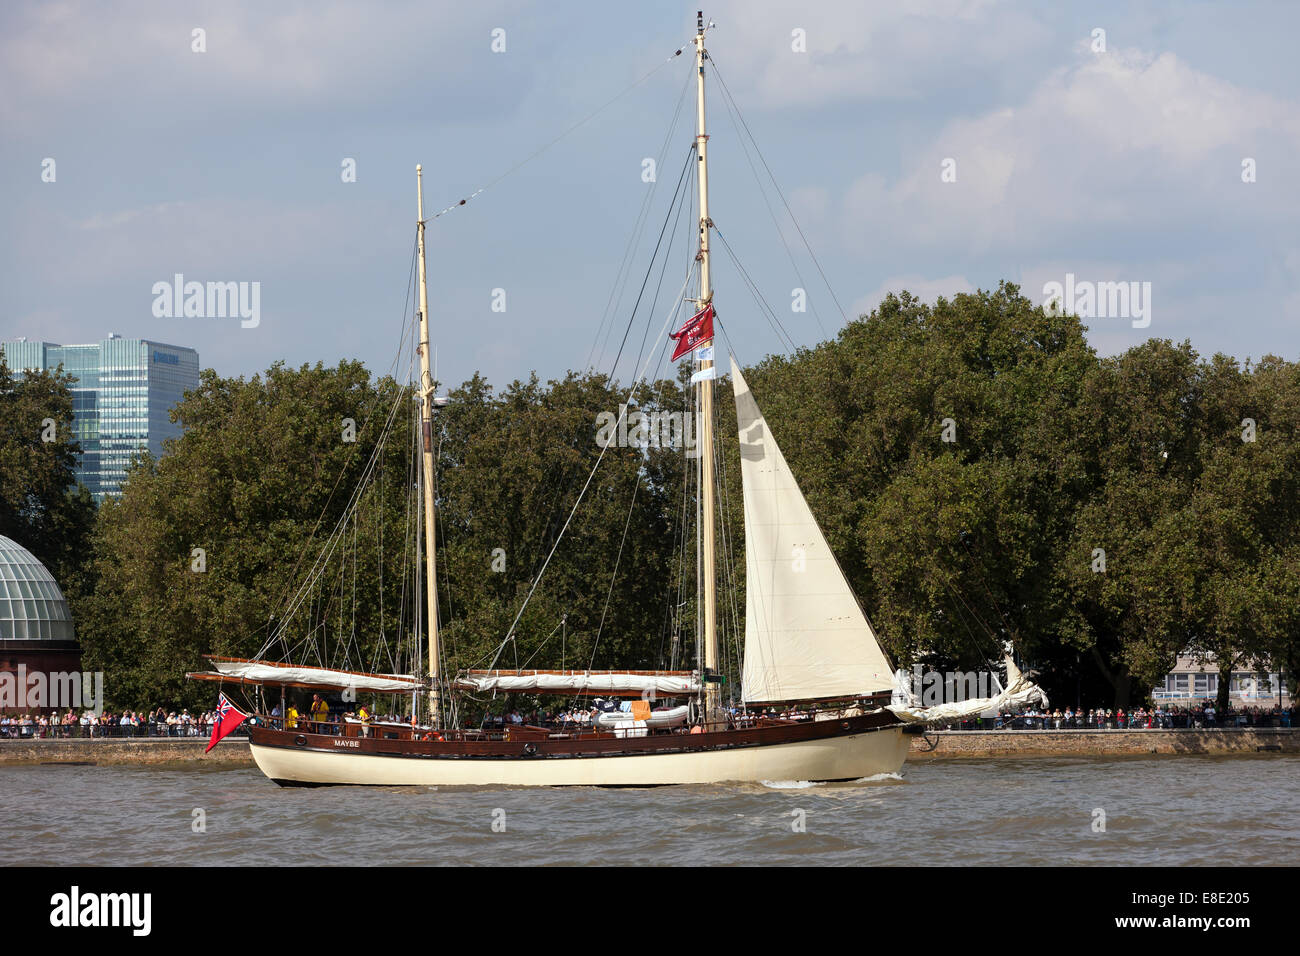 Maybe, a Dutch sailing ketch, taking part in the parade of sail, during the Tall Ships Festival, Greenwich. - Stock Image